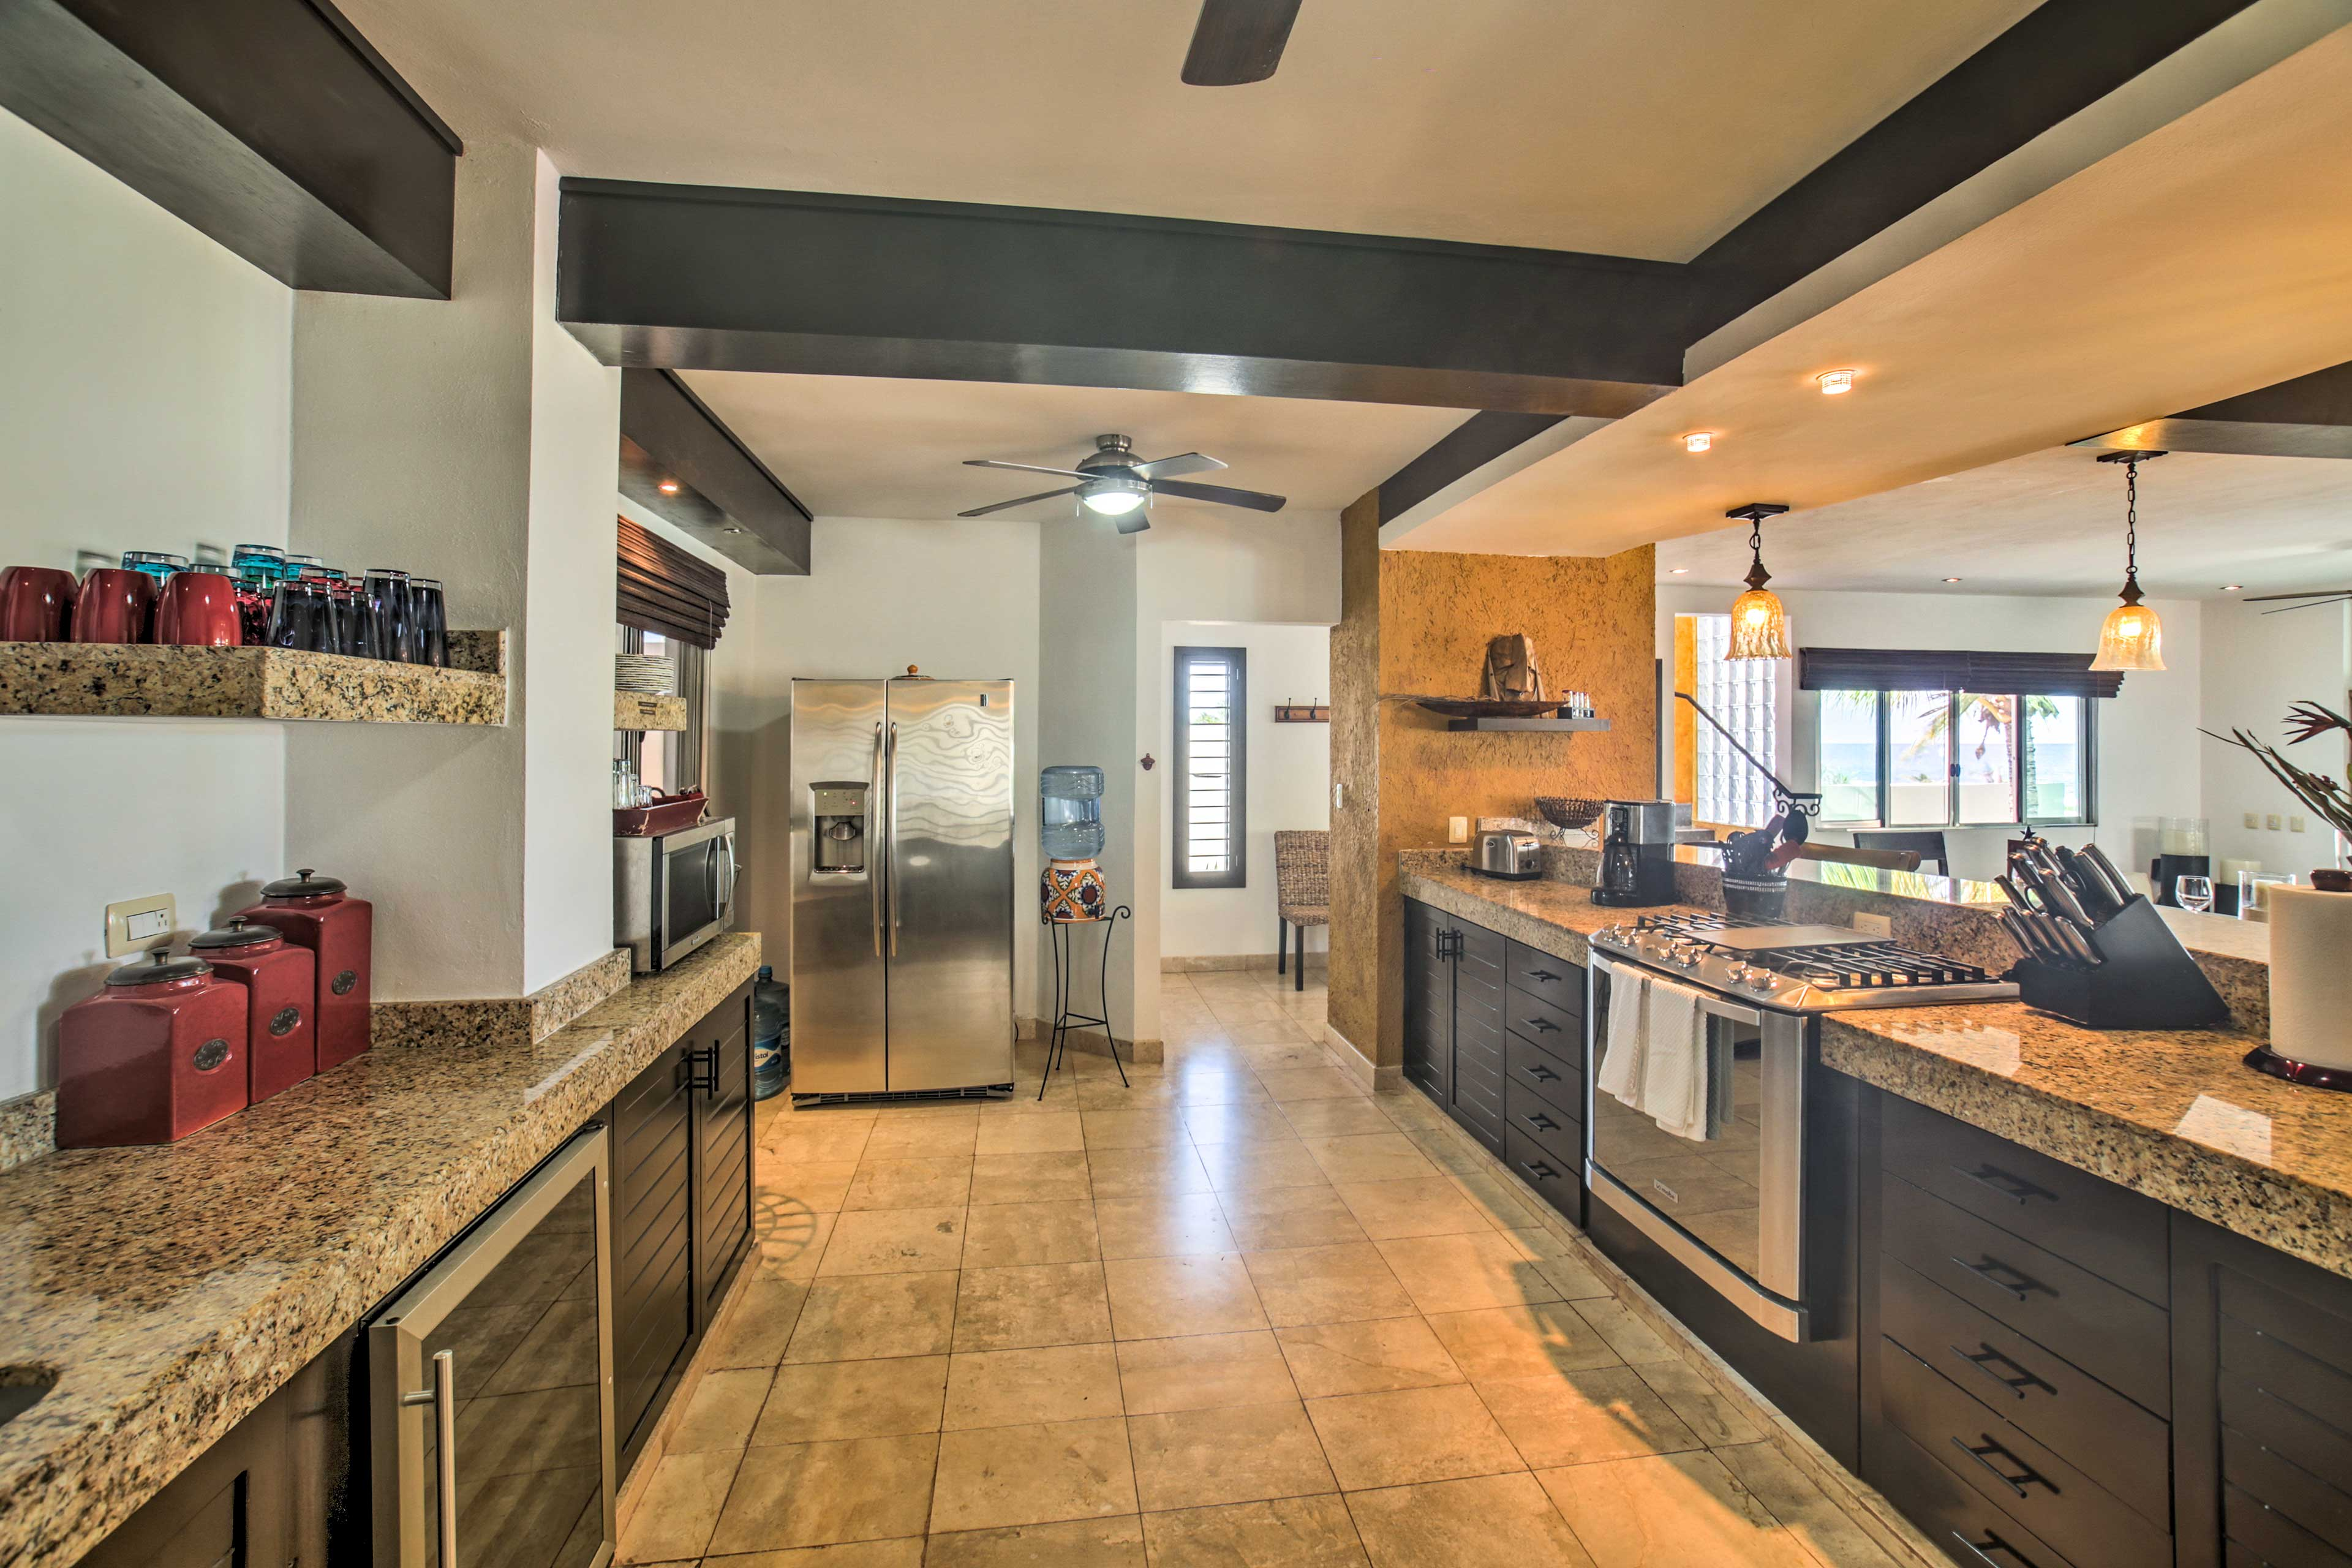 The estate offers 3 fully equipped kitchens!